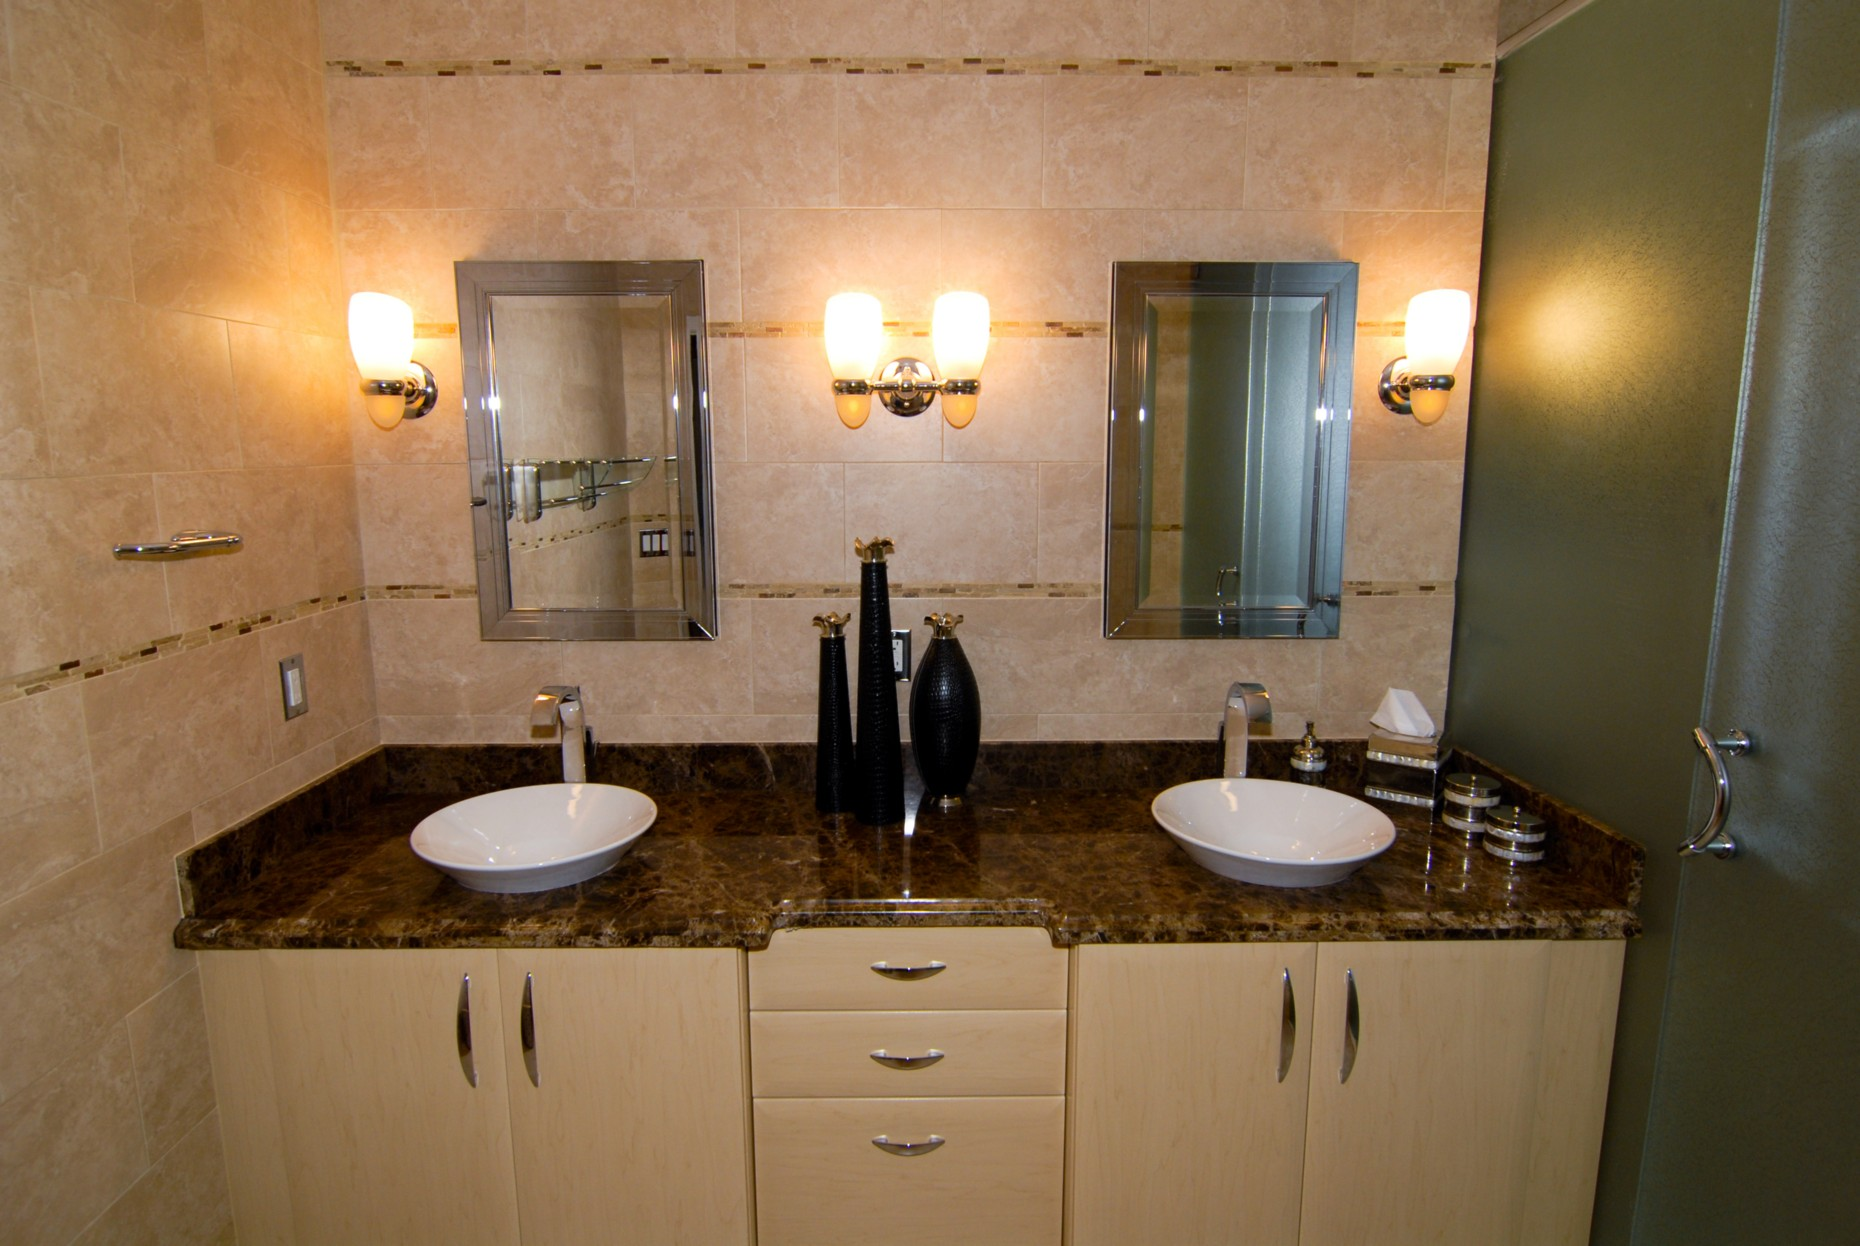 inspiring lowes bathroom lighting plus double mirrors on the wall plus double sink plus bathroom cabinet for bathroom decor inspiration